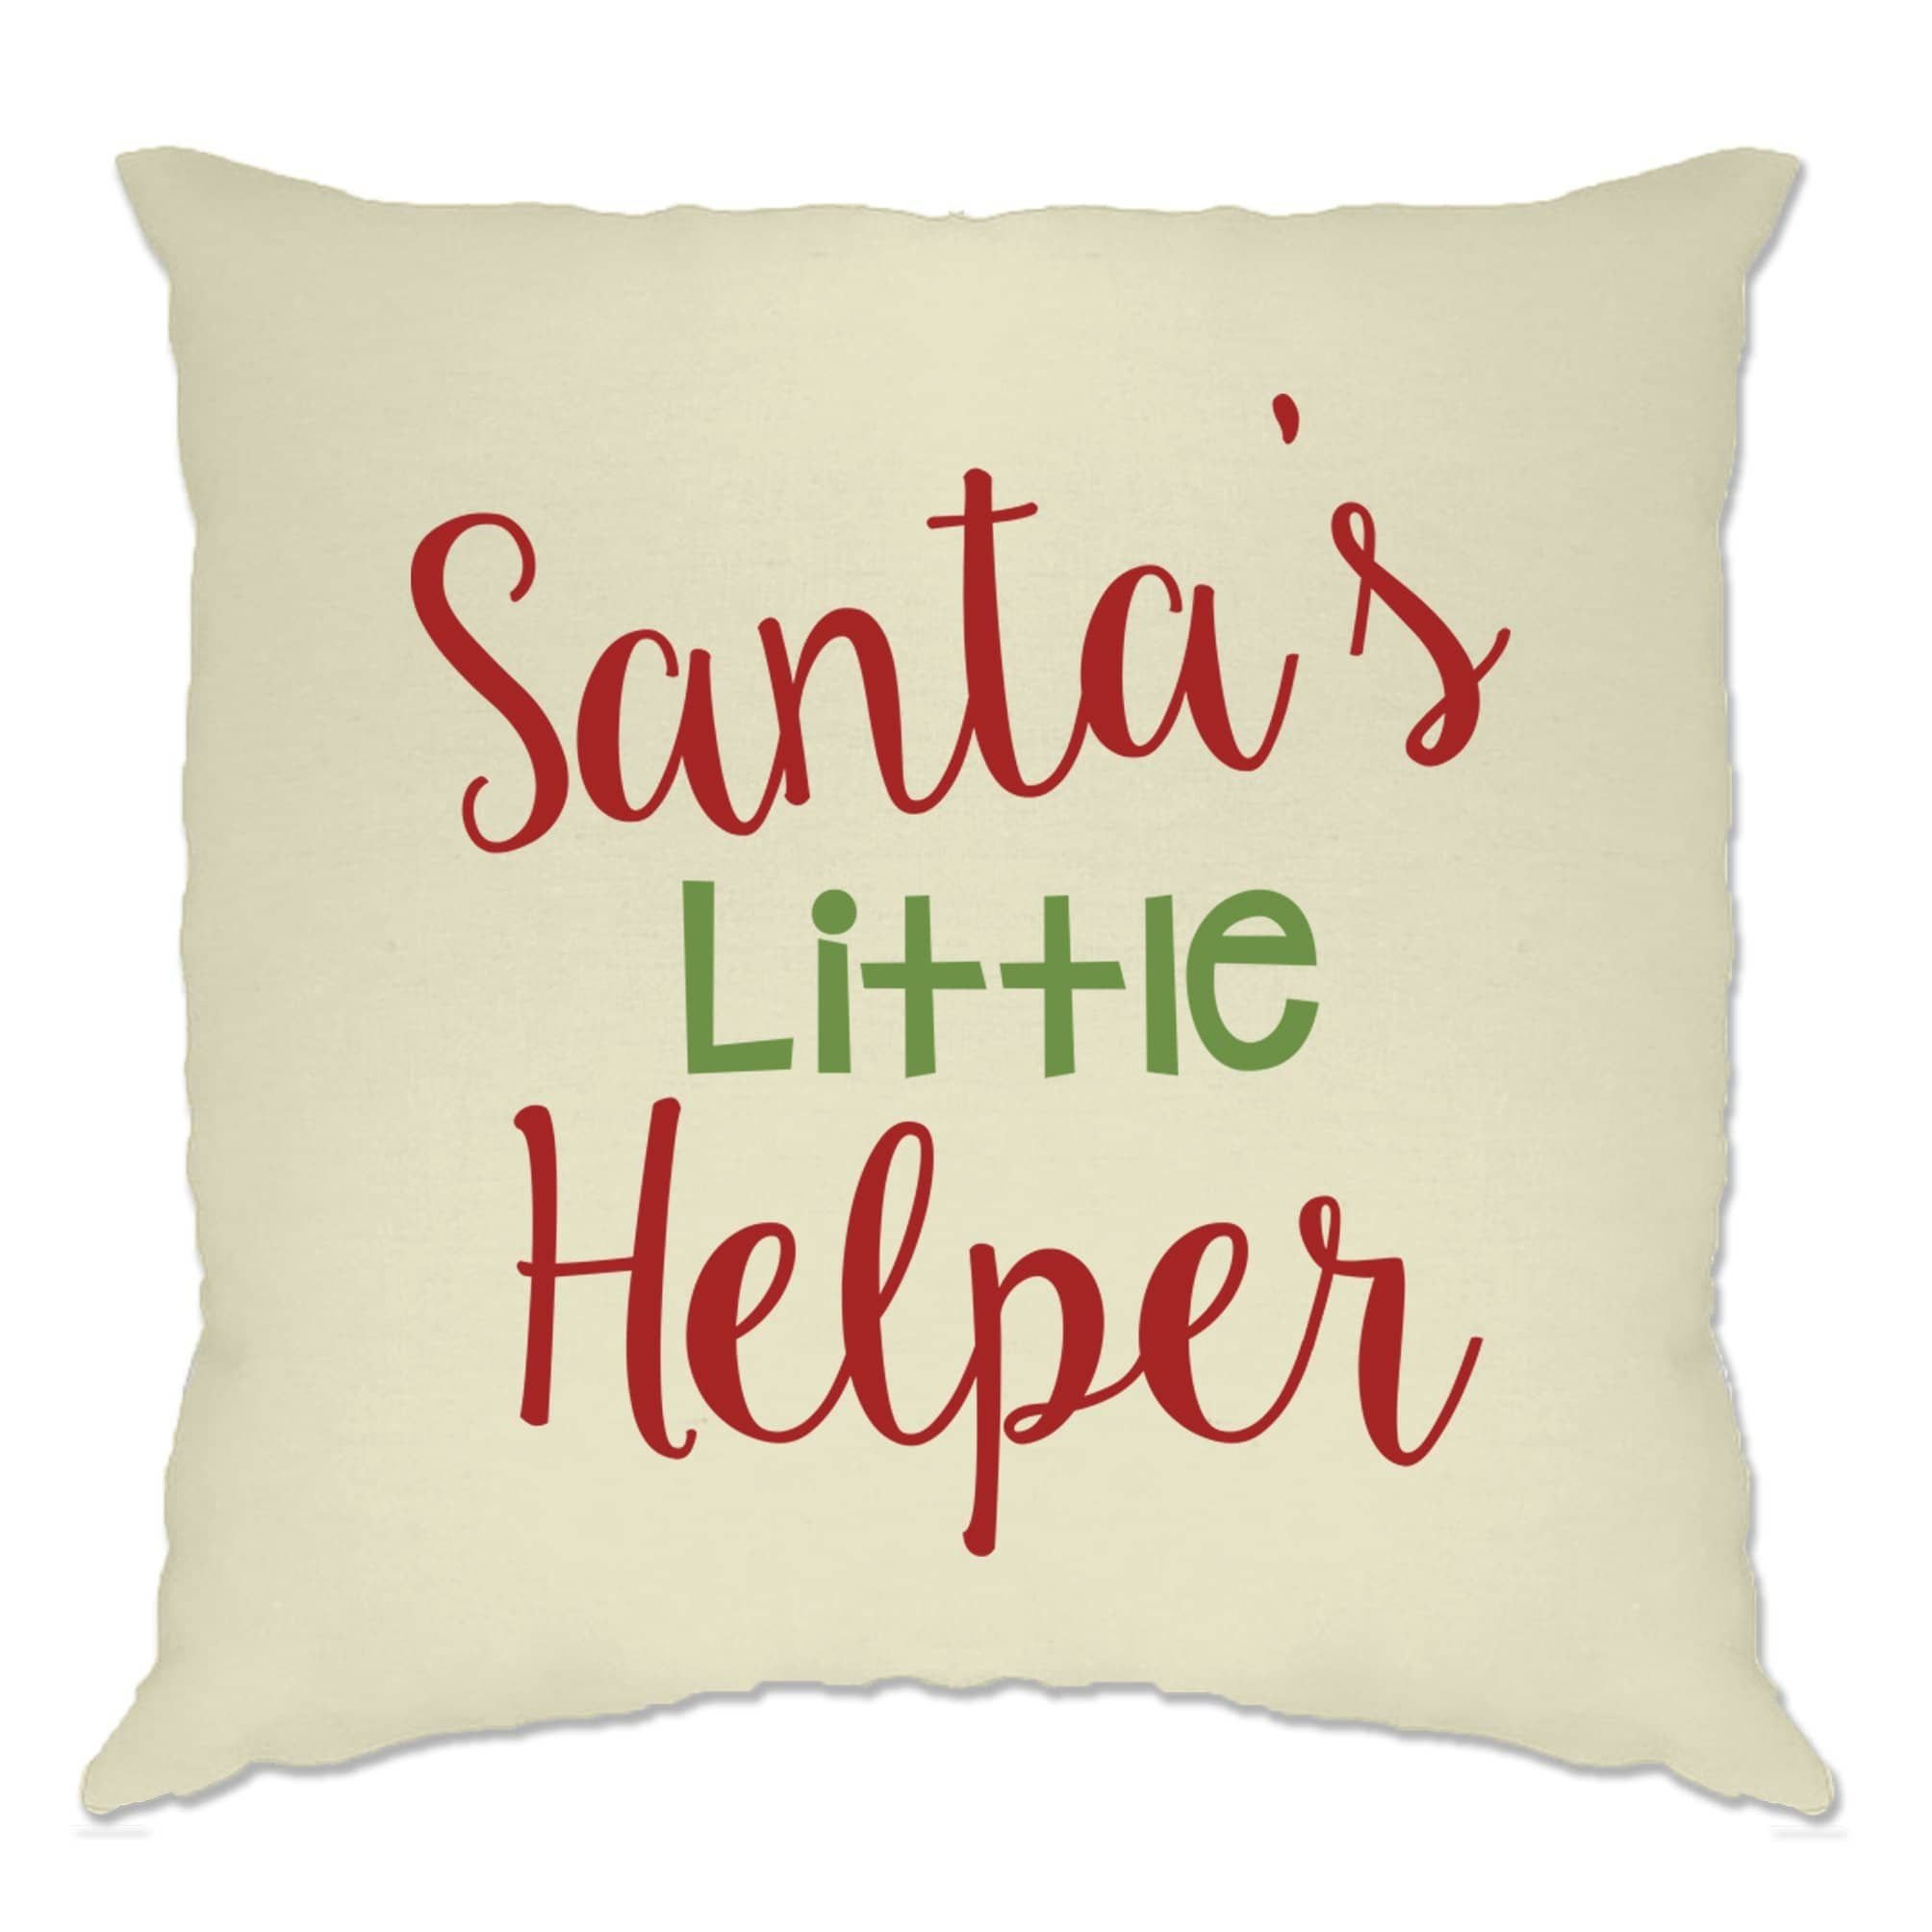 Christmas Cushion Cover Santa's Little Helper Slogan